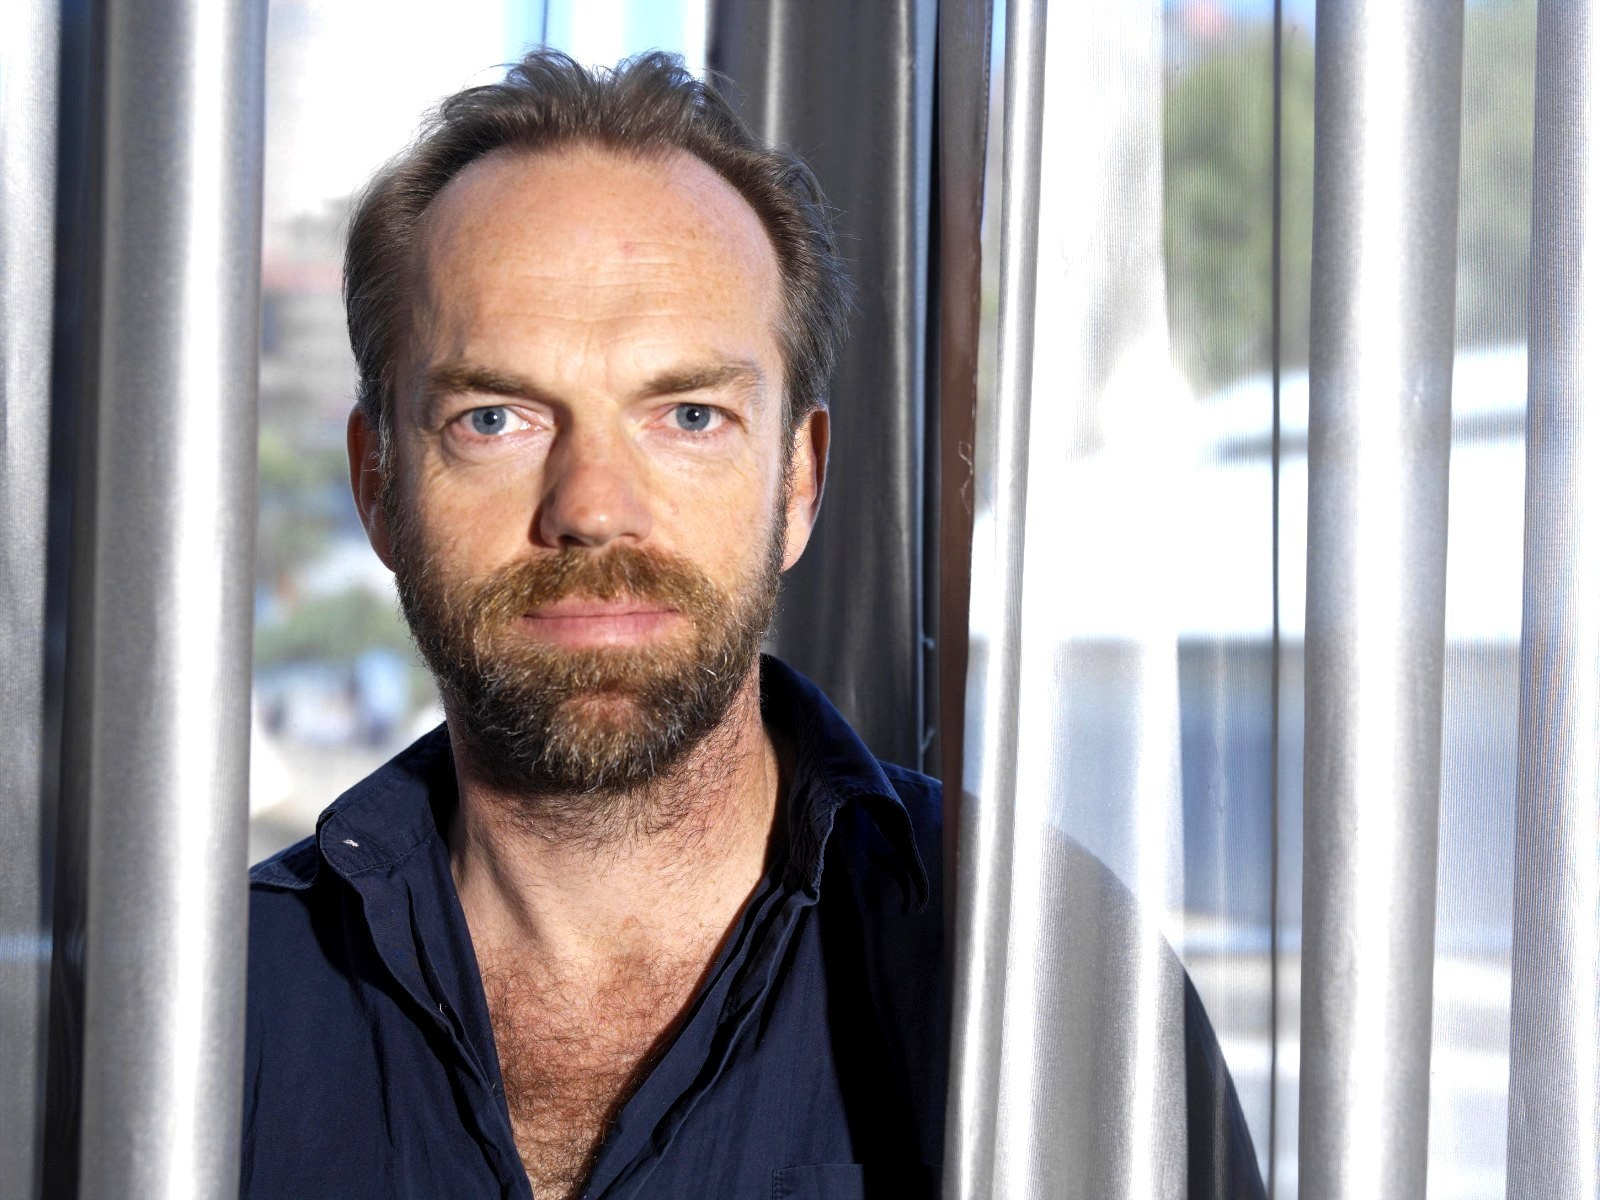 HUGO Weaving - HUGO Weaving Wallpaper (10490576) - Fanpop